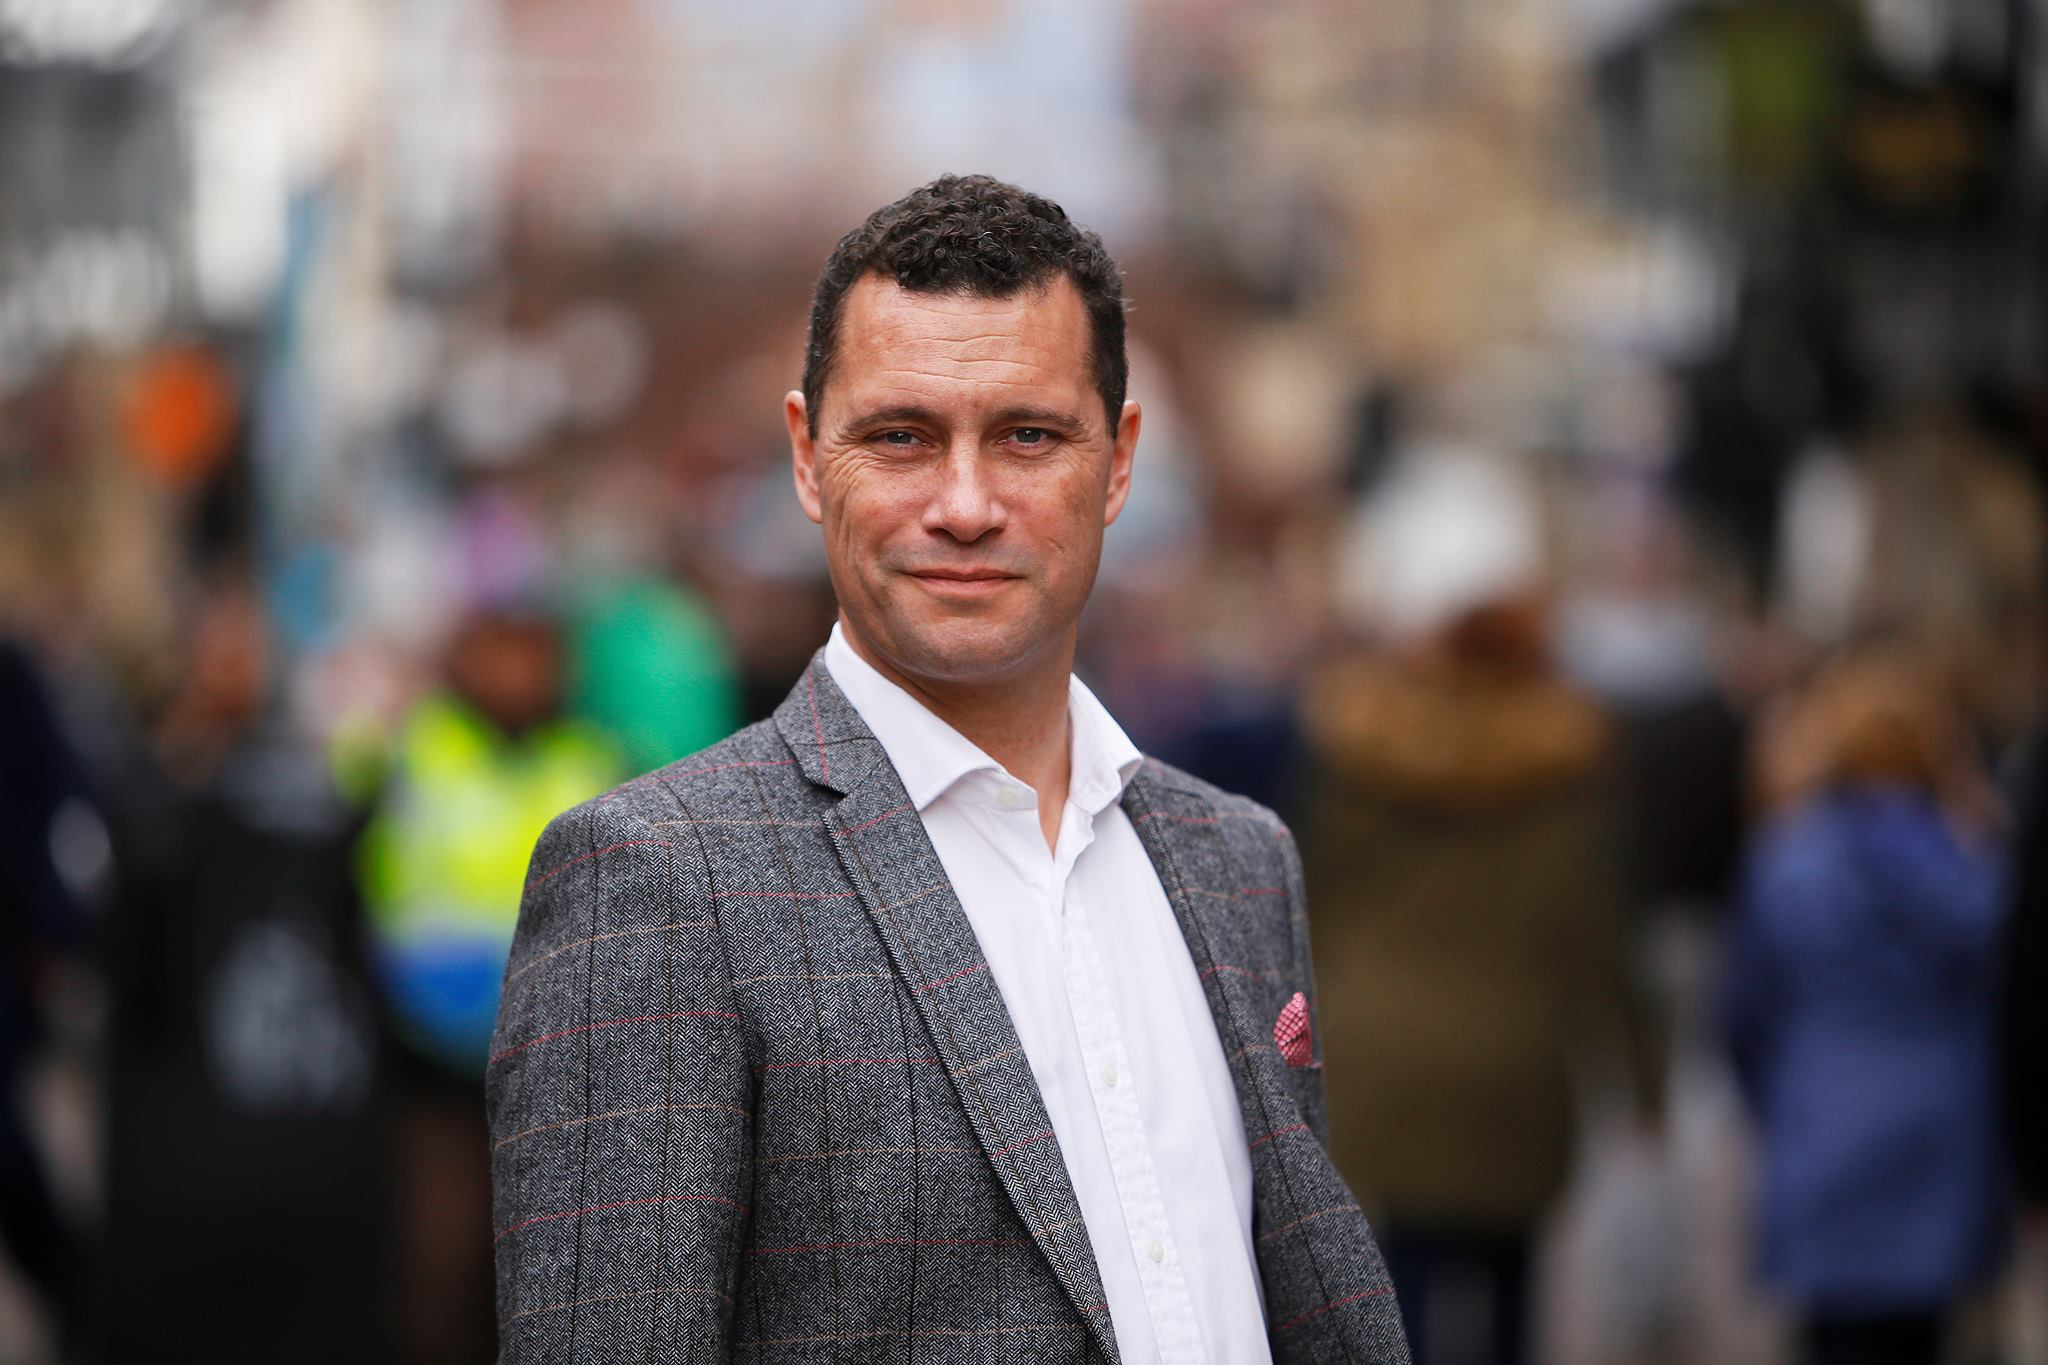 Photo of VIDEO. Penalizăm opiniile pro-viață? Eurodeputatul Steven Woolfe (UK) despre Convenția de la Istanbul ratificată de Parlamentul UE: O legiferare a delictului de opinie. Mâine ce opinie va fi interzisă?